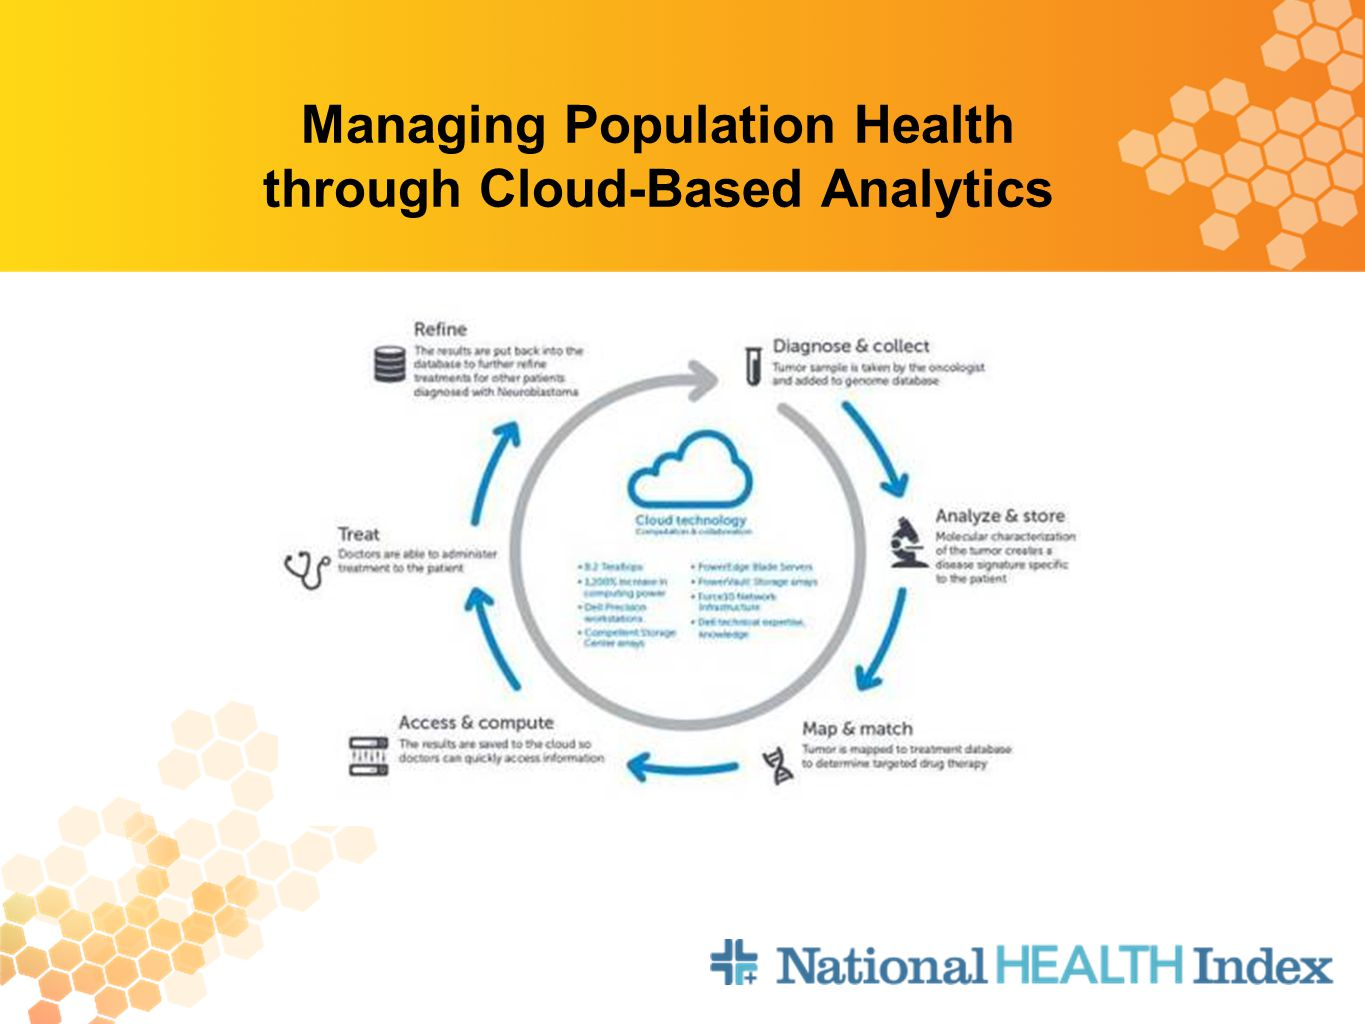 Managing Population Health through Cloud-Based Analytics